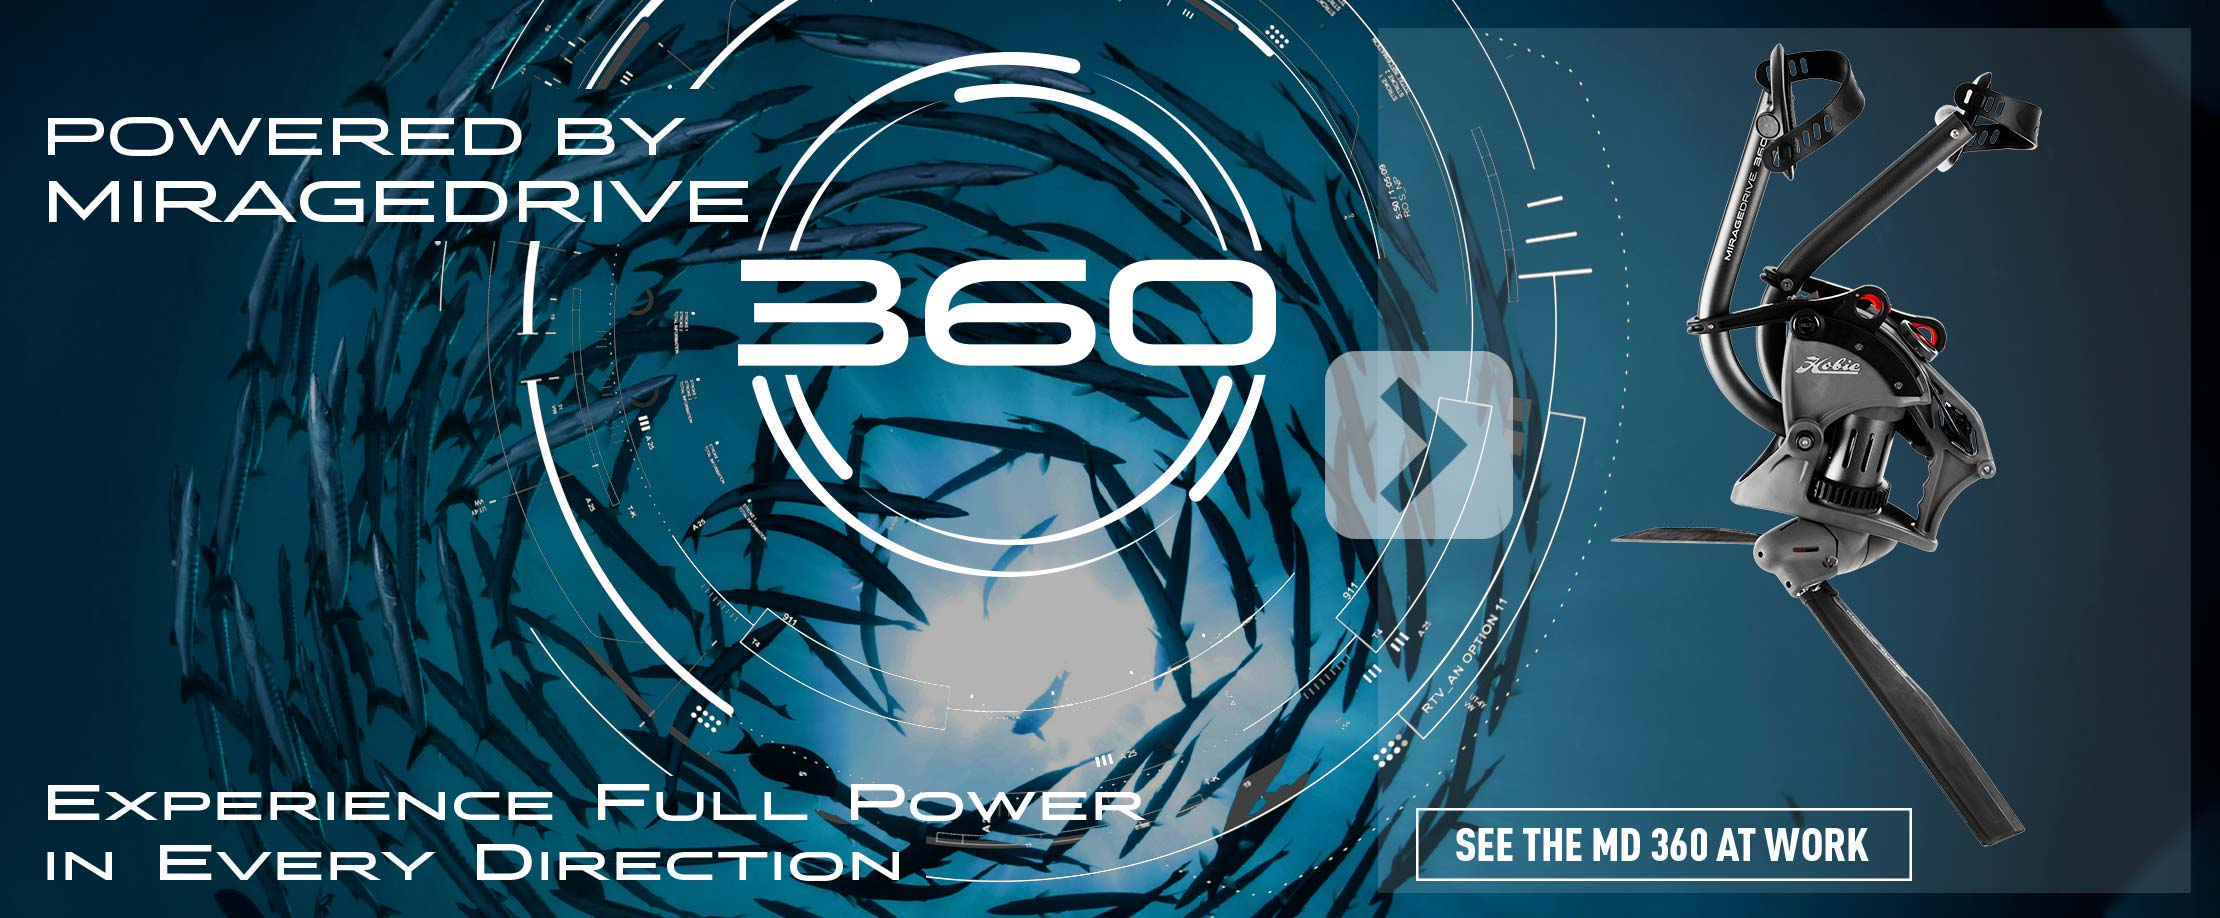 Powered By MirageDrive 360